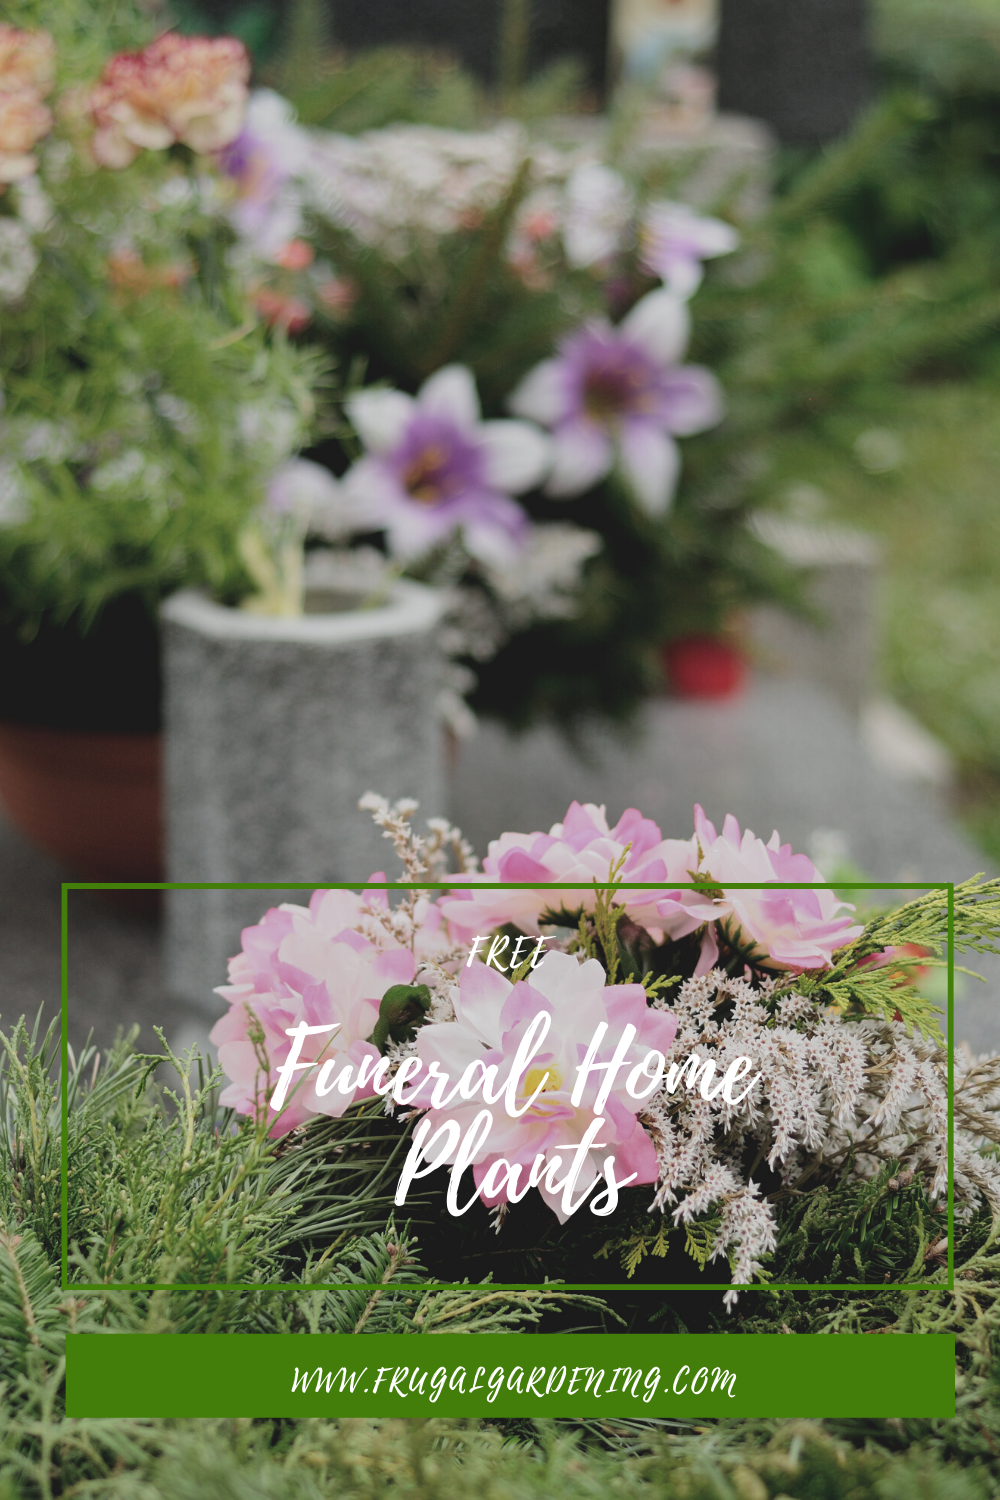 Free Funeral Home Plants